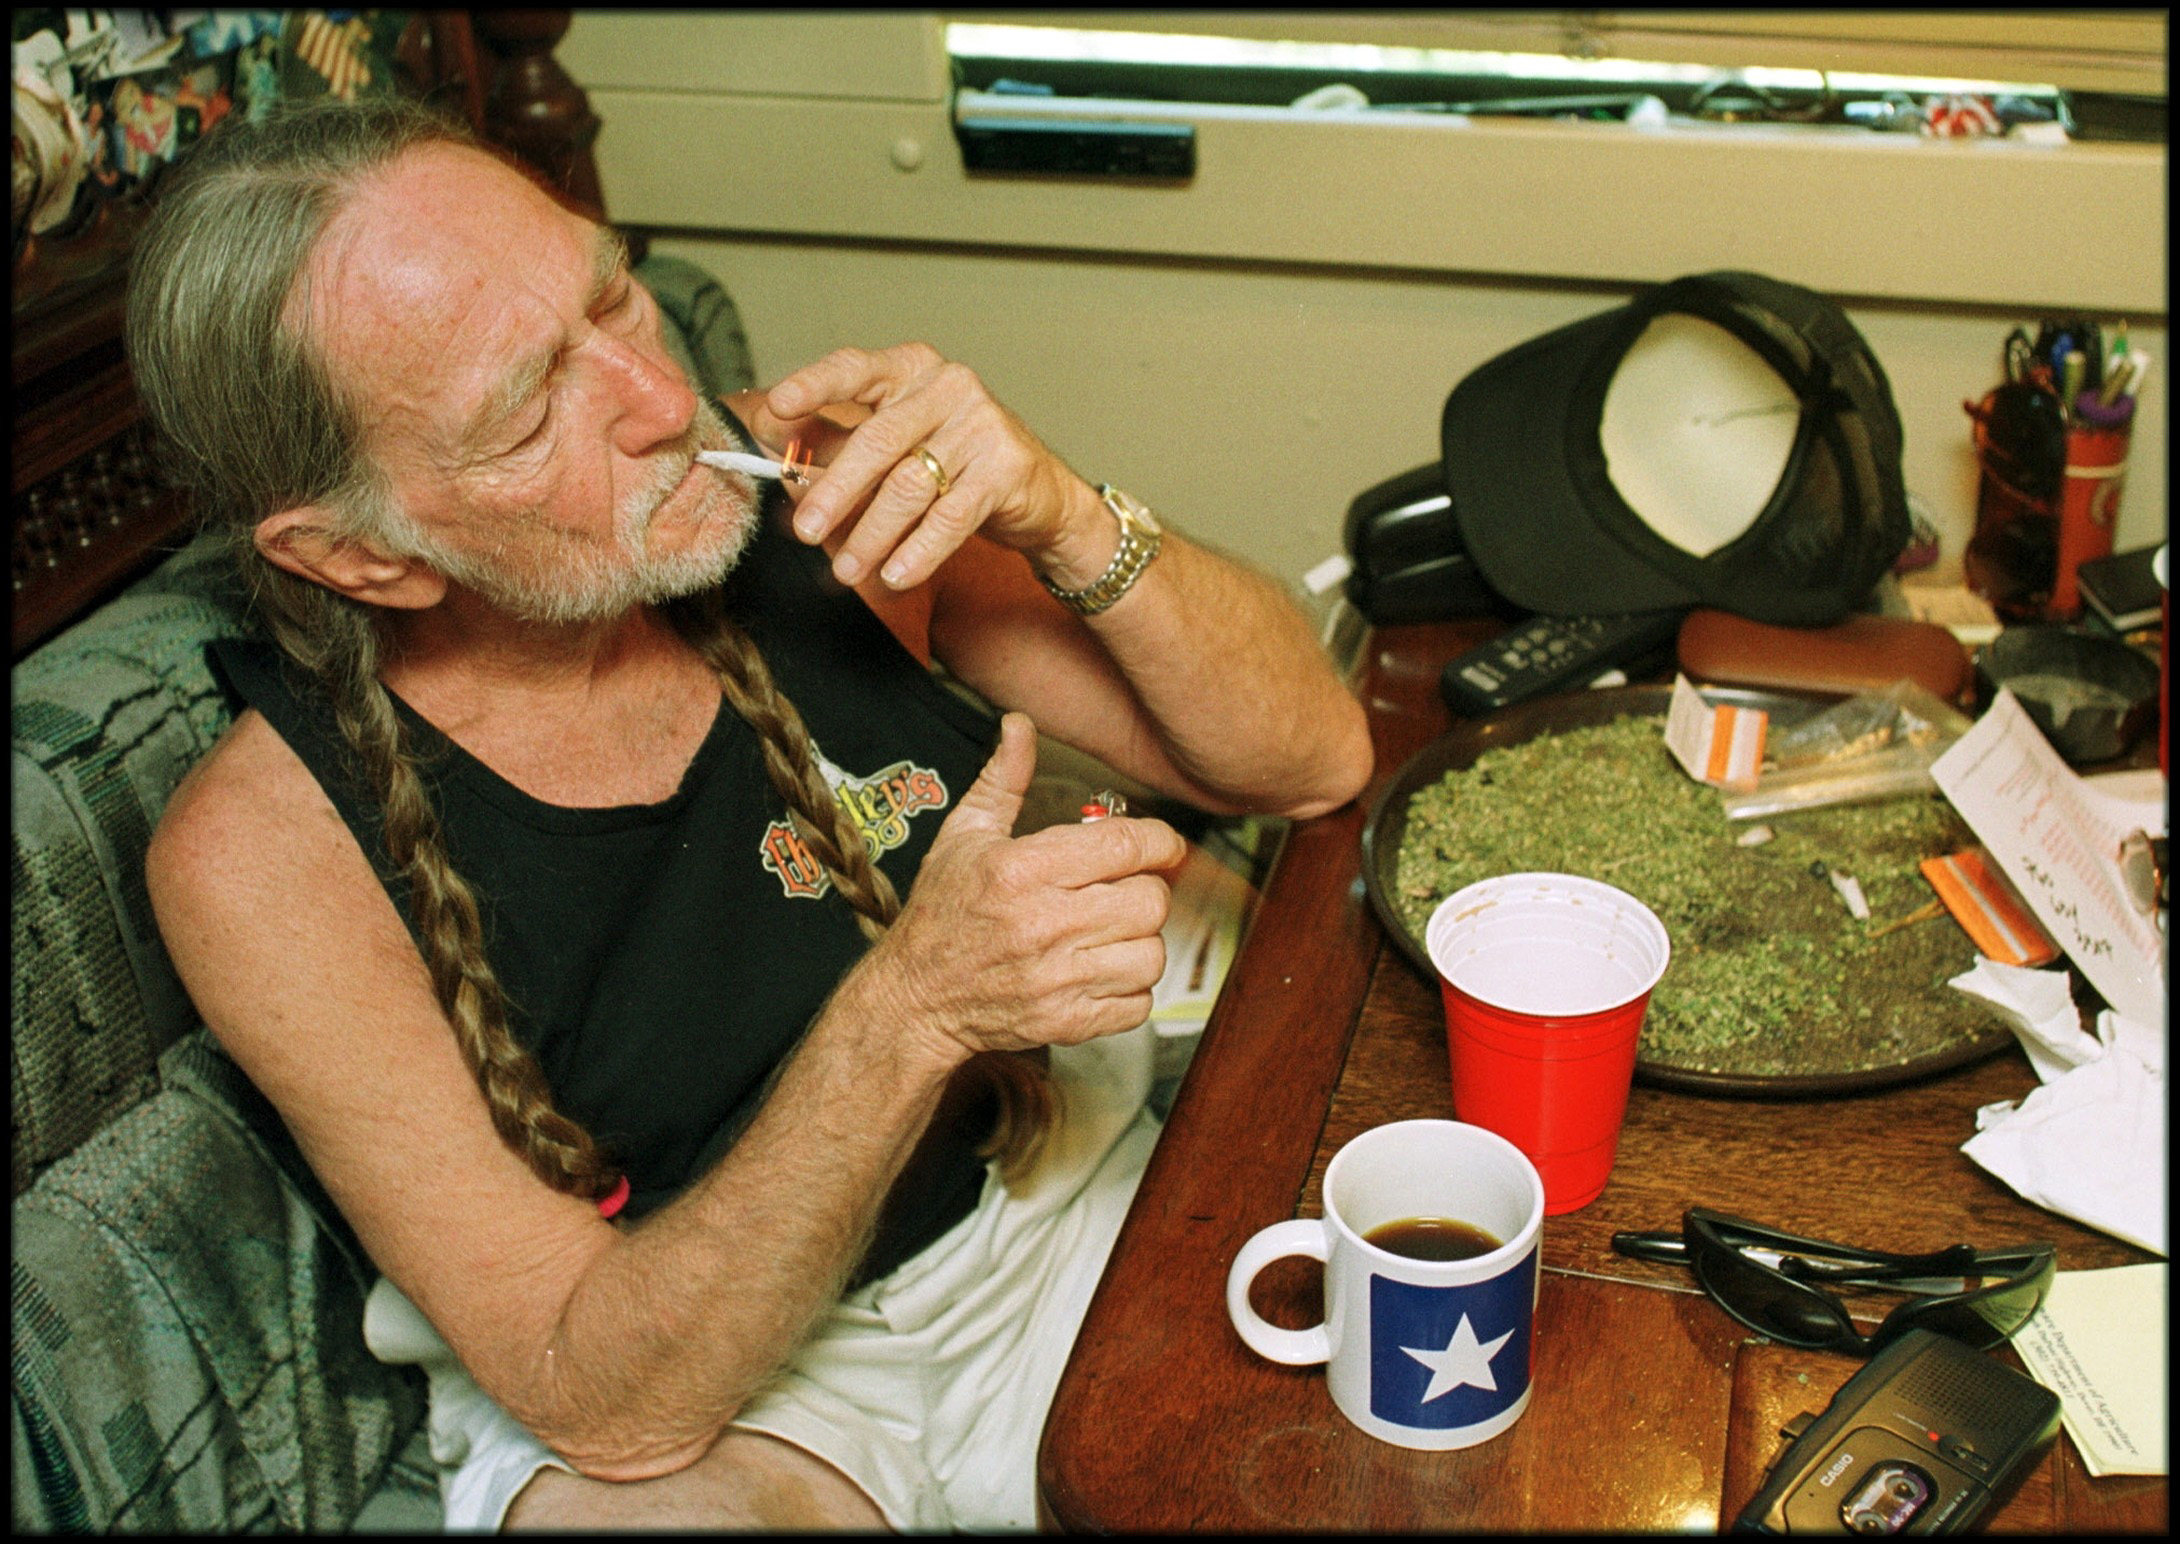 American country singer Willie Nelson takes a drag off a joint while relaxing at his home in Texas, 2000s. A large amount of